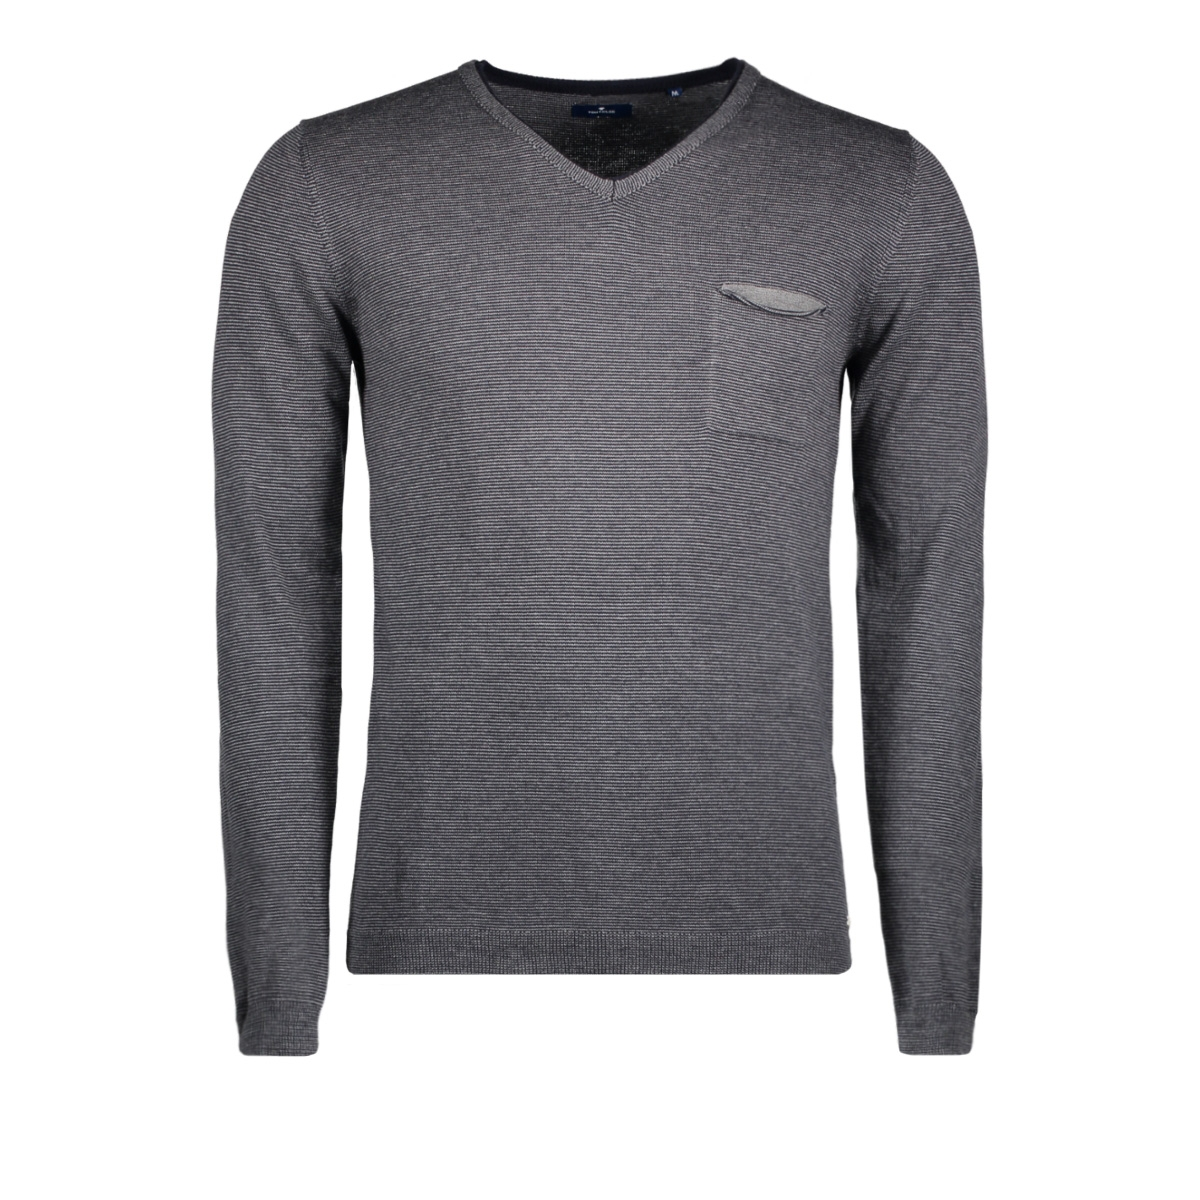 Tom tailor t shirt 6800 for Tailored t shirts online